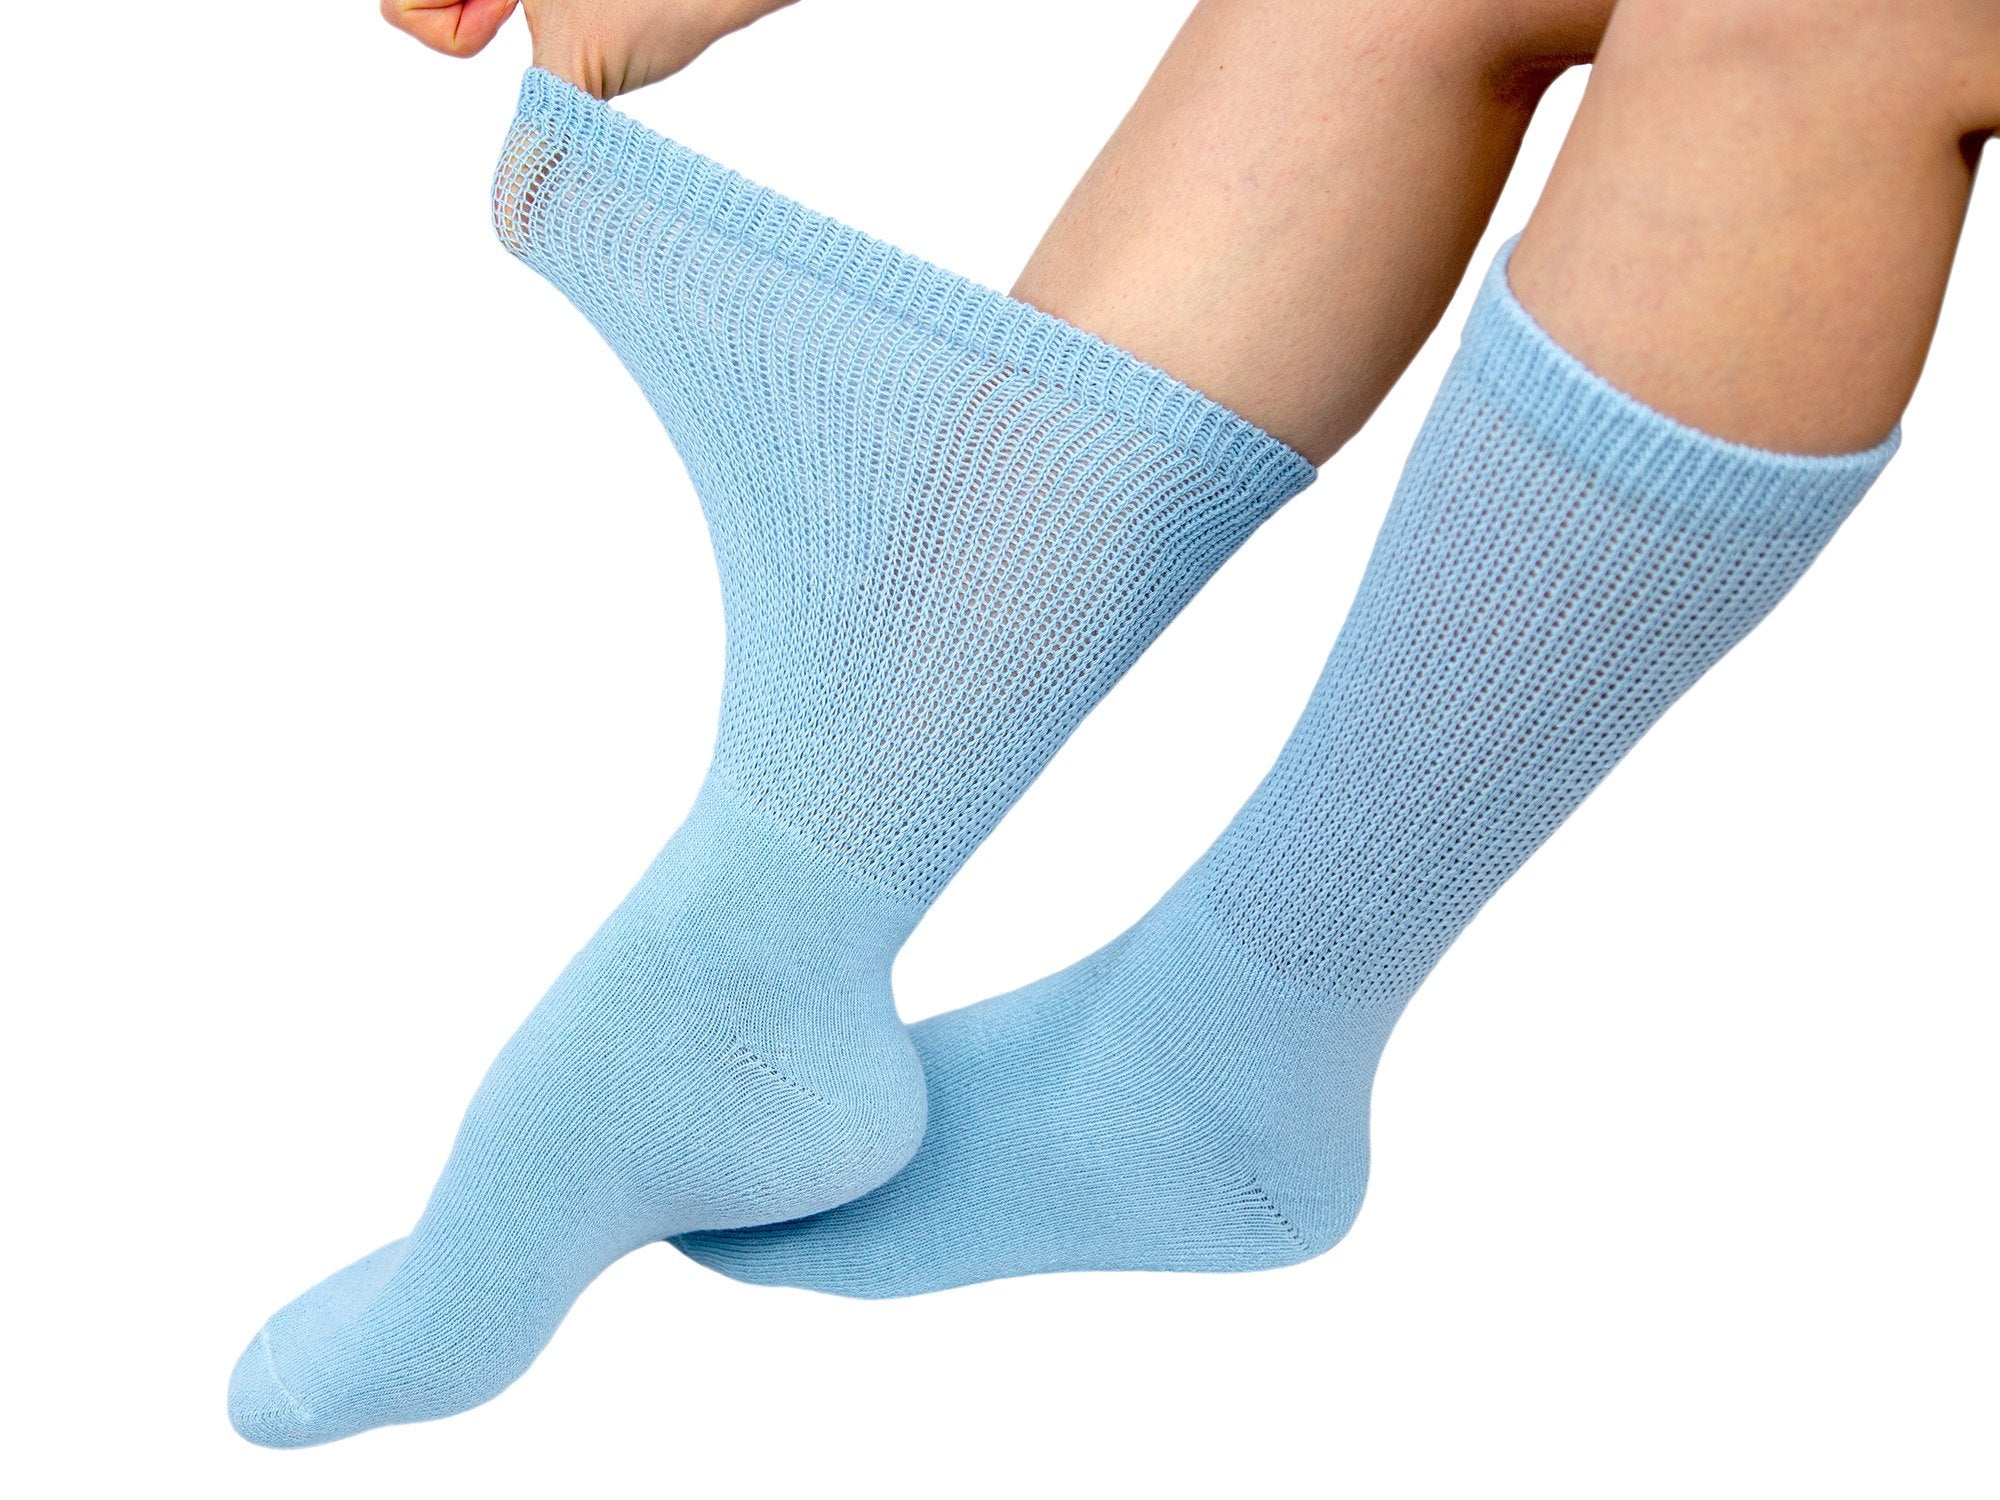 6 Pairs of Premium Women's Colorful Soft Breathable Cotton Crew Socks, Non-Binding & Comfort Diabetic Socks, Fits Shoe Size 6-12